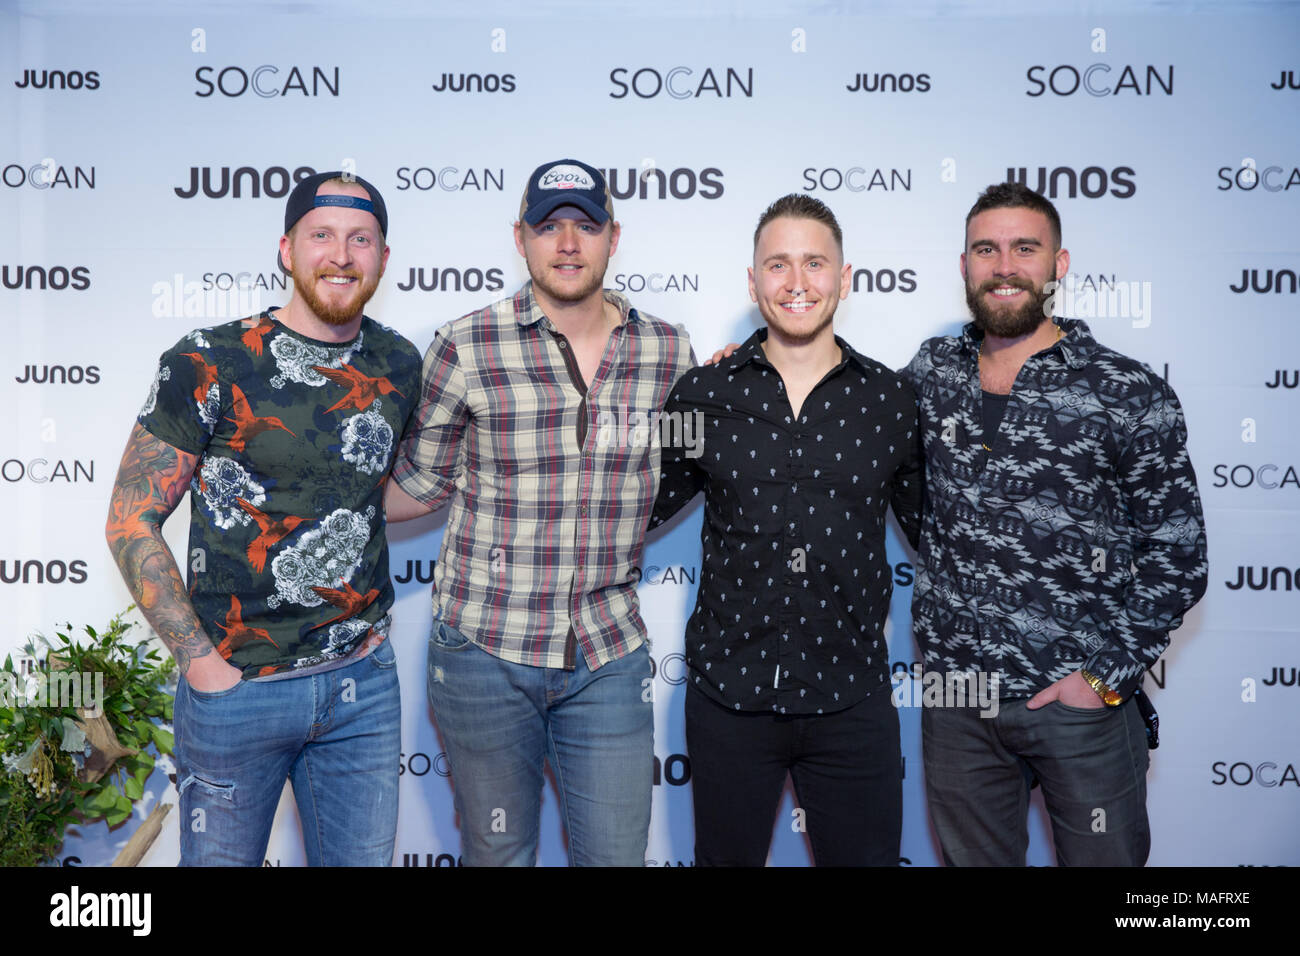 Vancouver, CANADA. 24th March, 2018. James Barker Band on the red carpet at the 2018 Juno Awards gala in Vancouver. Bobby Singh/fohphoto - Stock Image